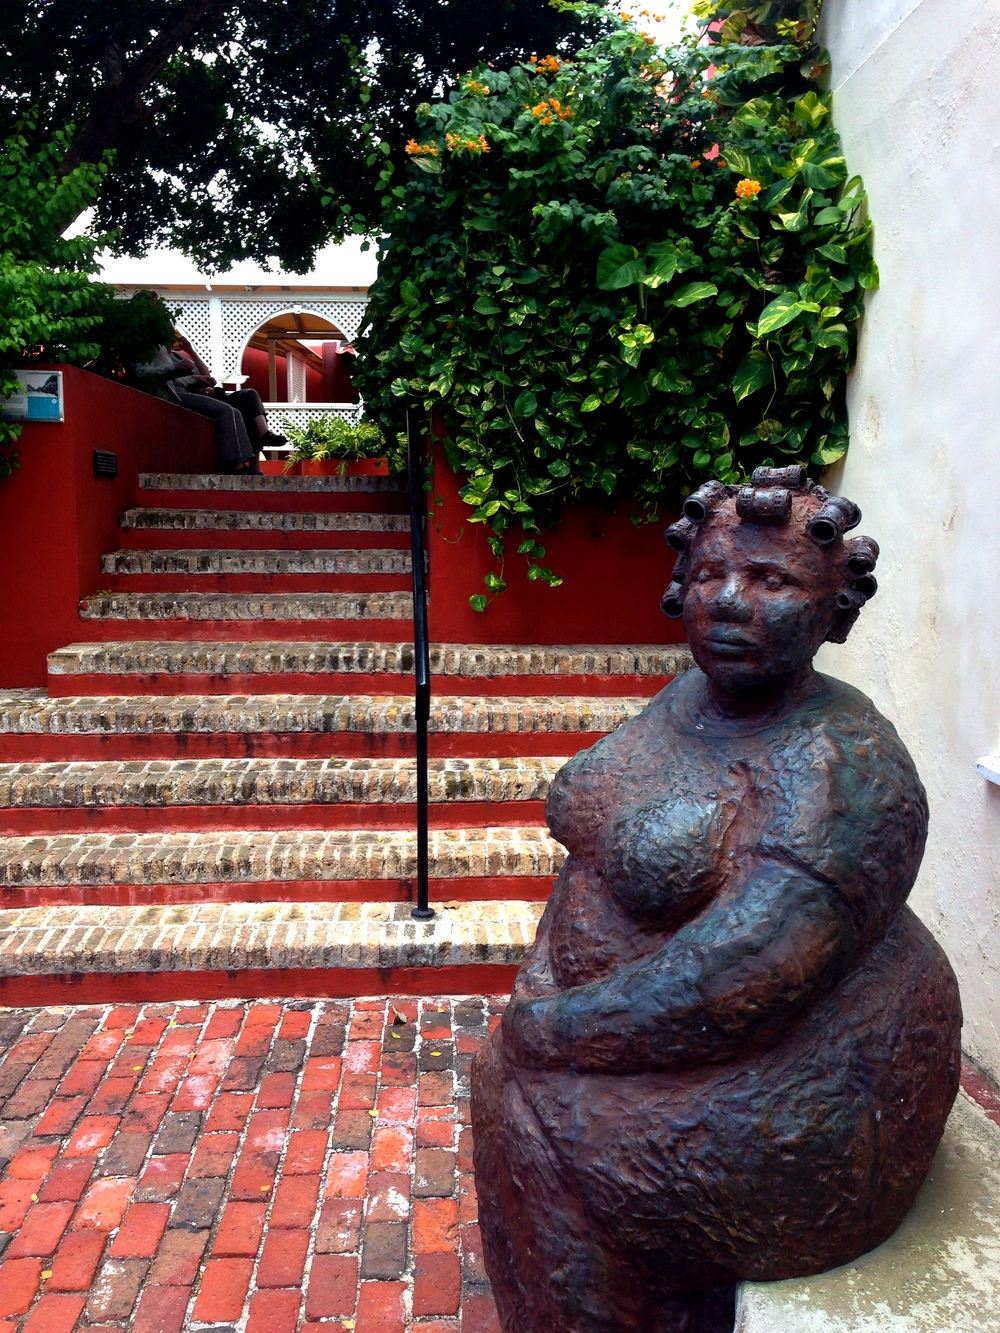 Sculpture by Hortence Brouwn at Kura Hulanda in Curacao